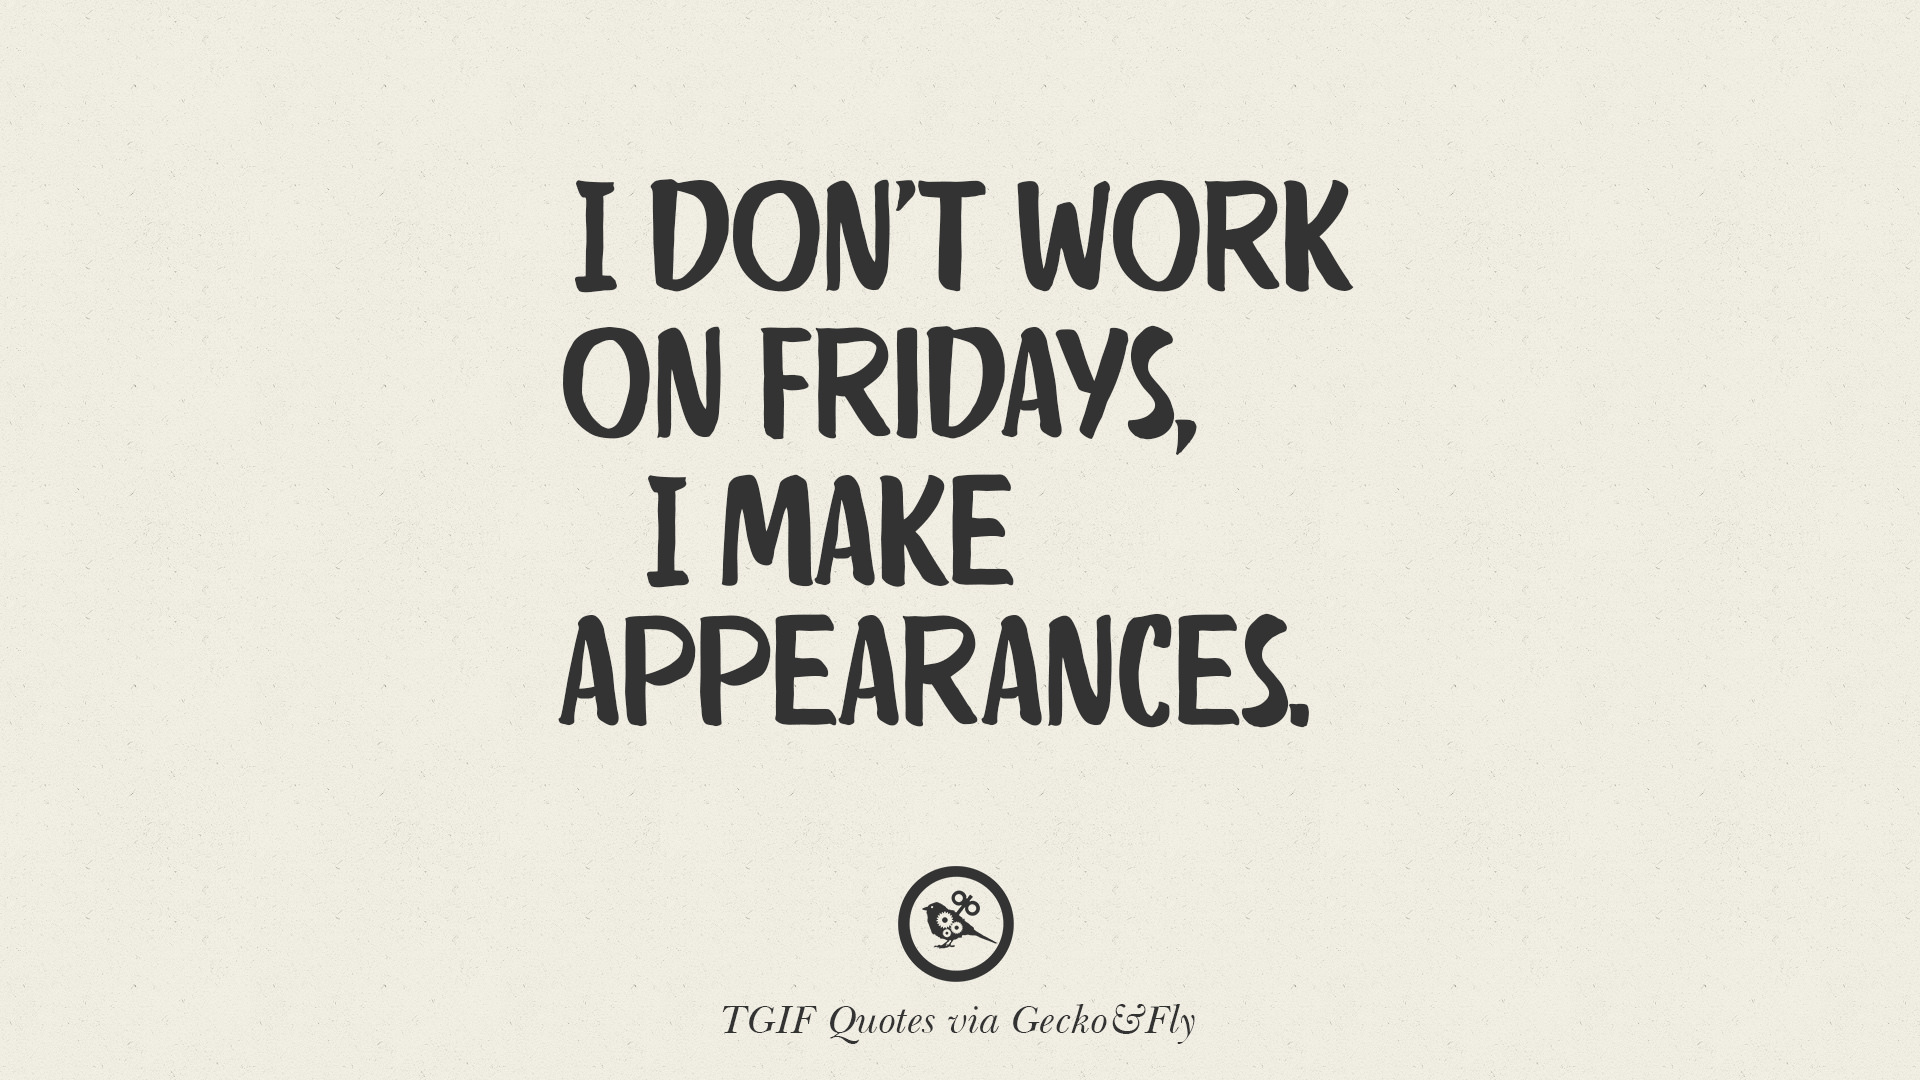 20 TGIF  Thank God It's Friday  Meme Quotes & Messages